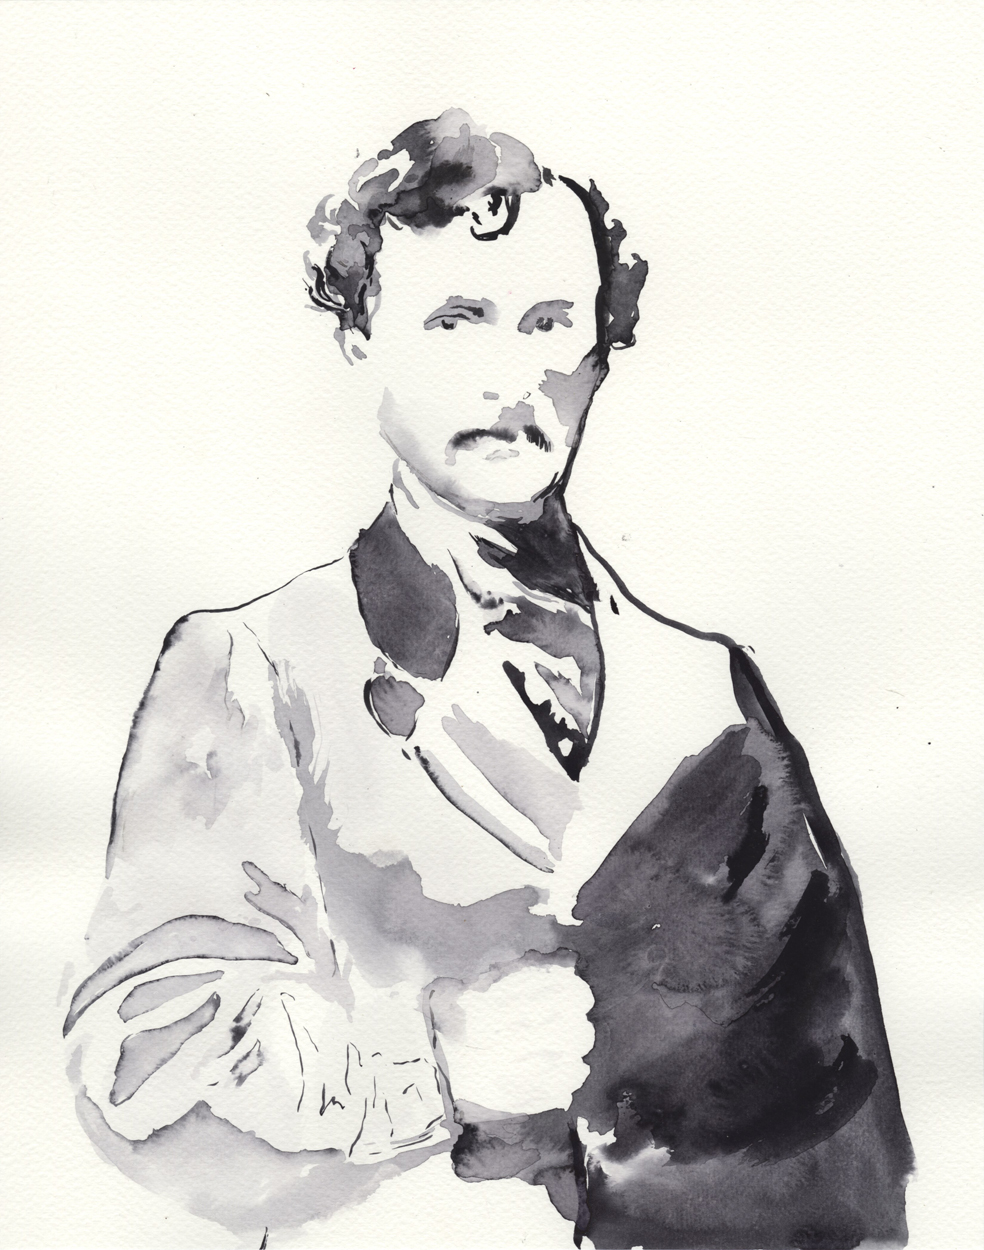 MelindaWang_JohnWilkesBooth_Drawing_2017_KambuiOlujimi.jpg